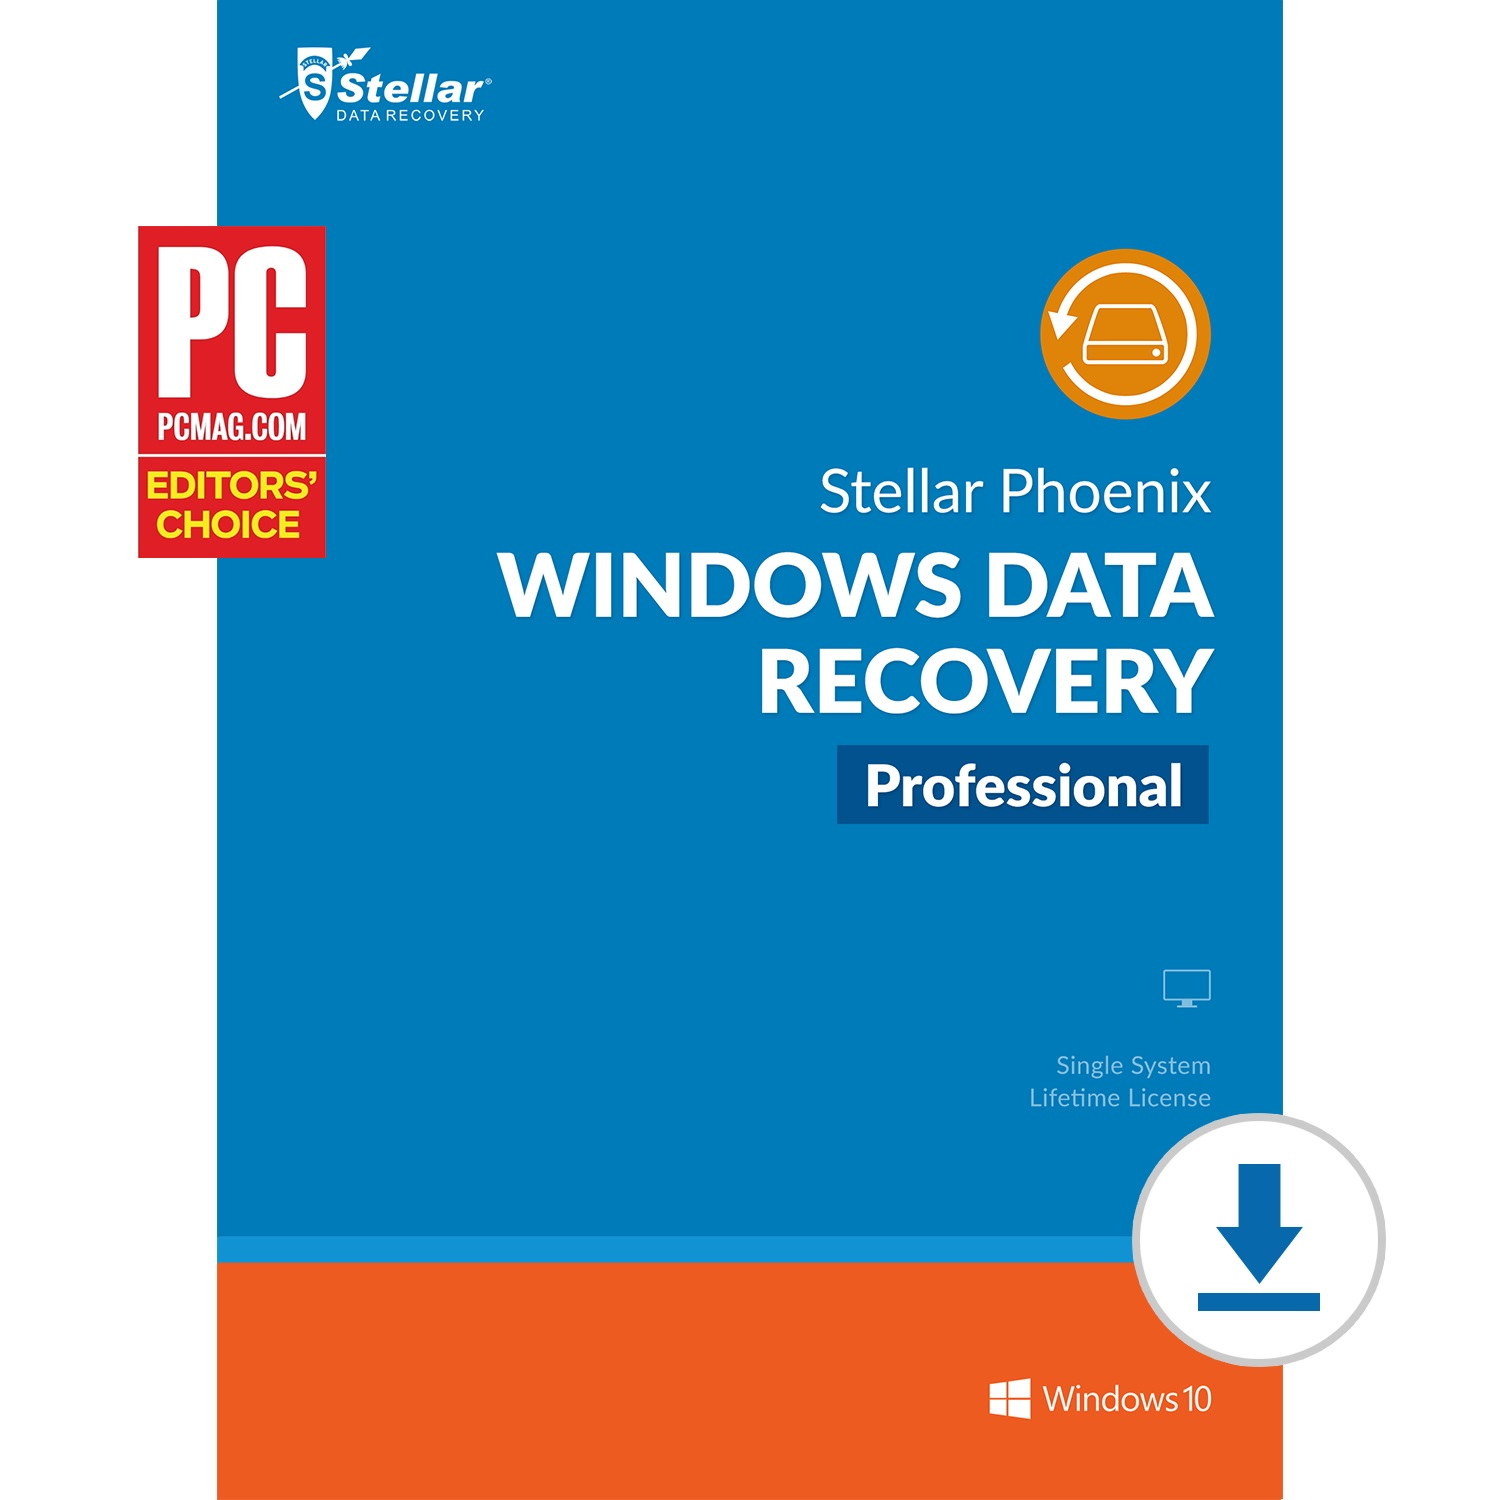 Stellar Data Recovery Software | for Windows | Professional | Recovers Data, Photos, Videos, Email & Dvd | 1 Device, 1 Yr Subscription | Instant Download (Email Delivery) by Stellar Data Recovery